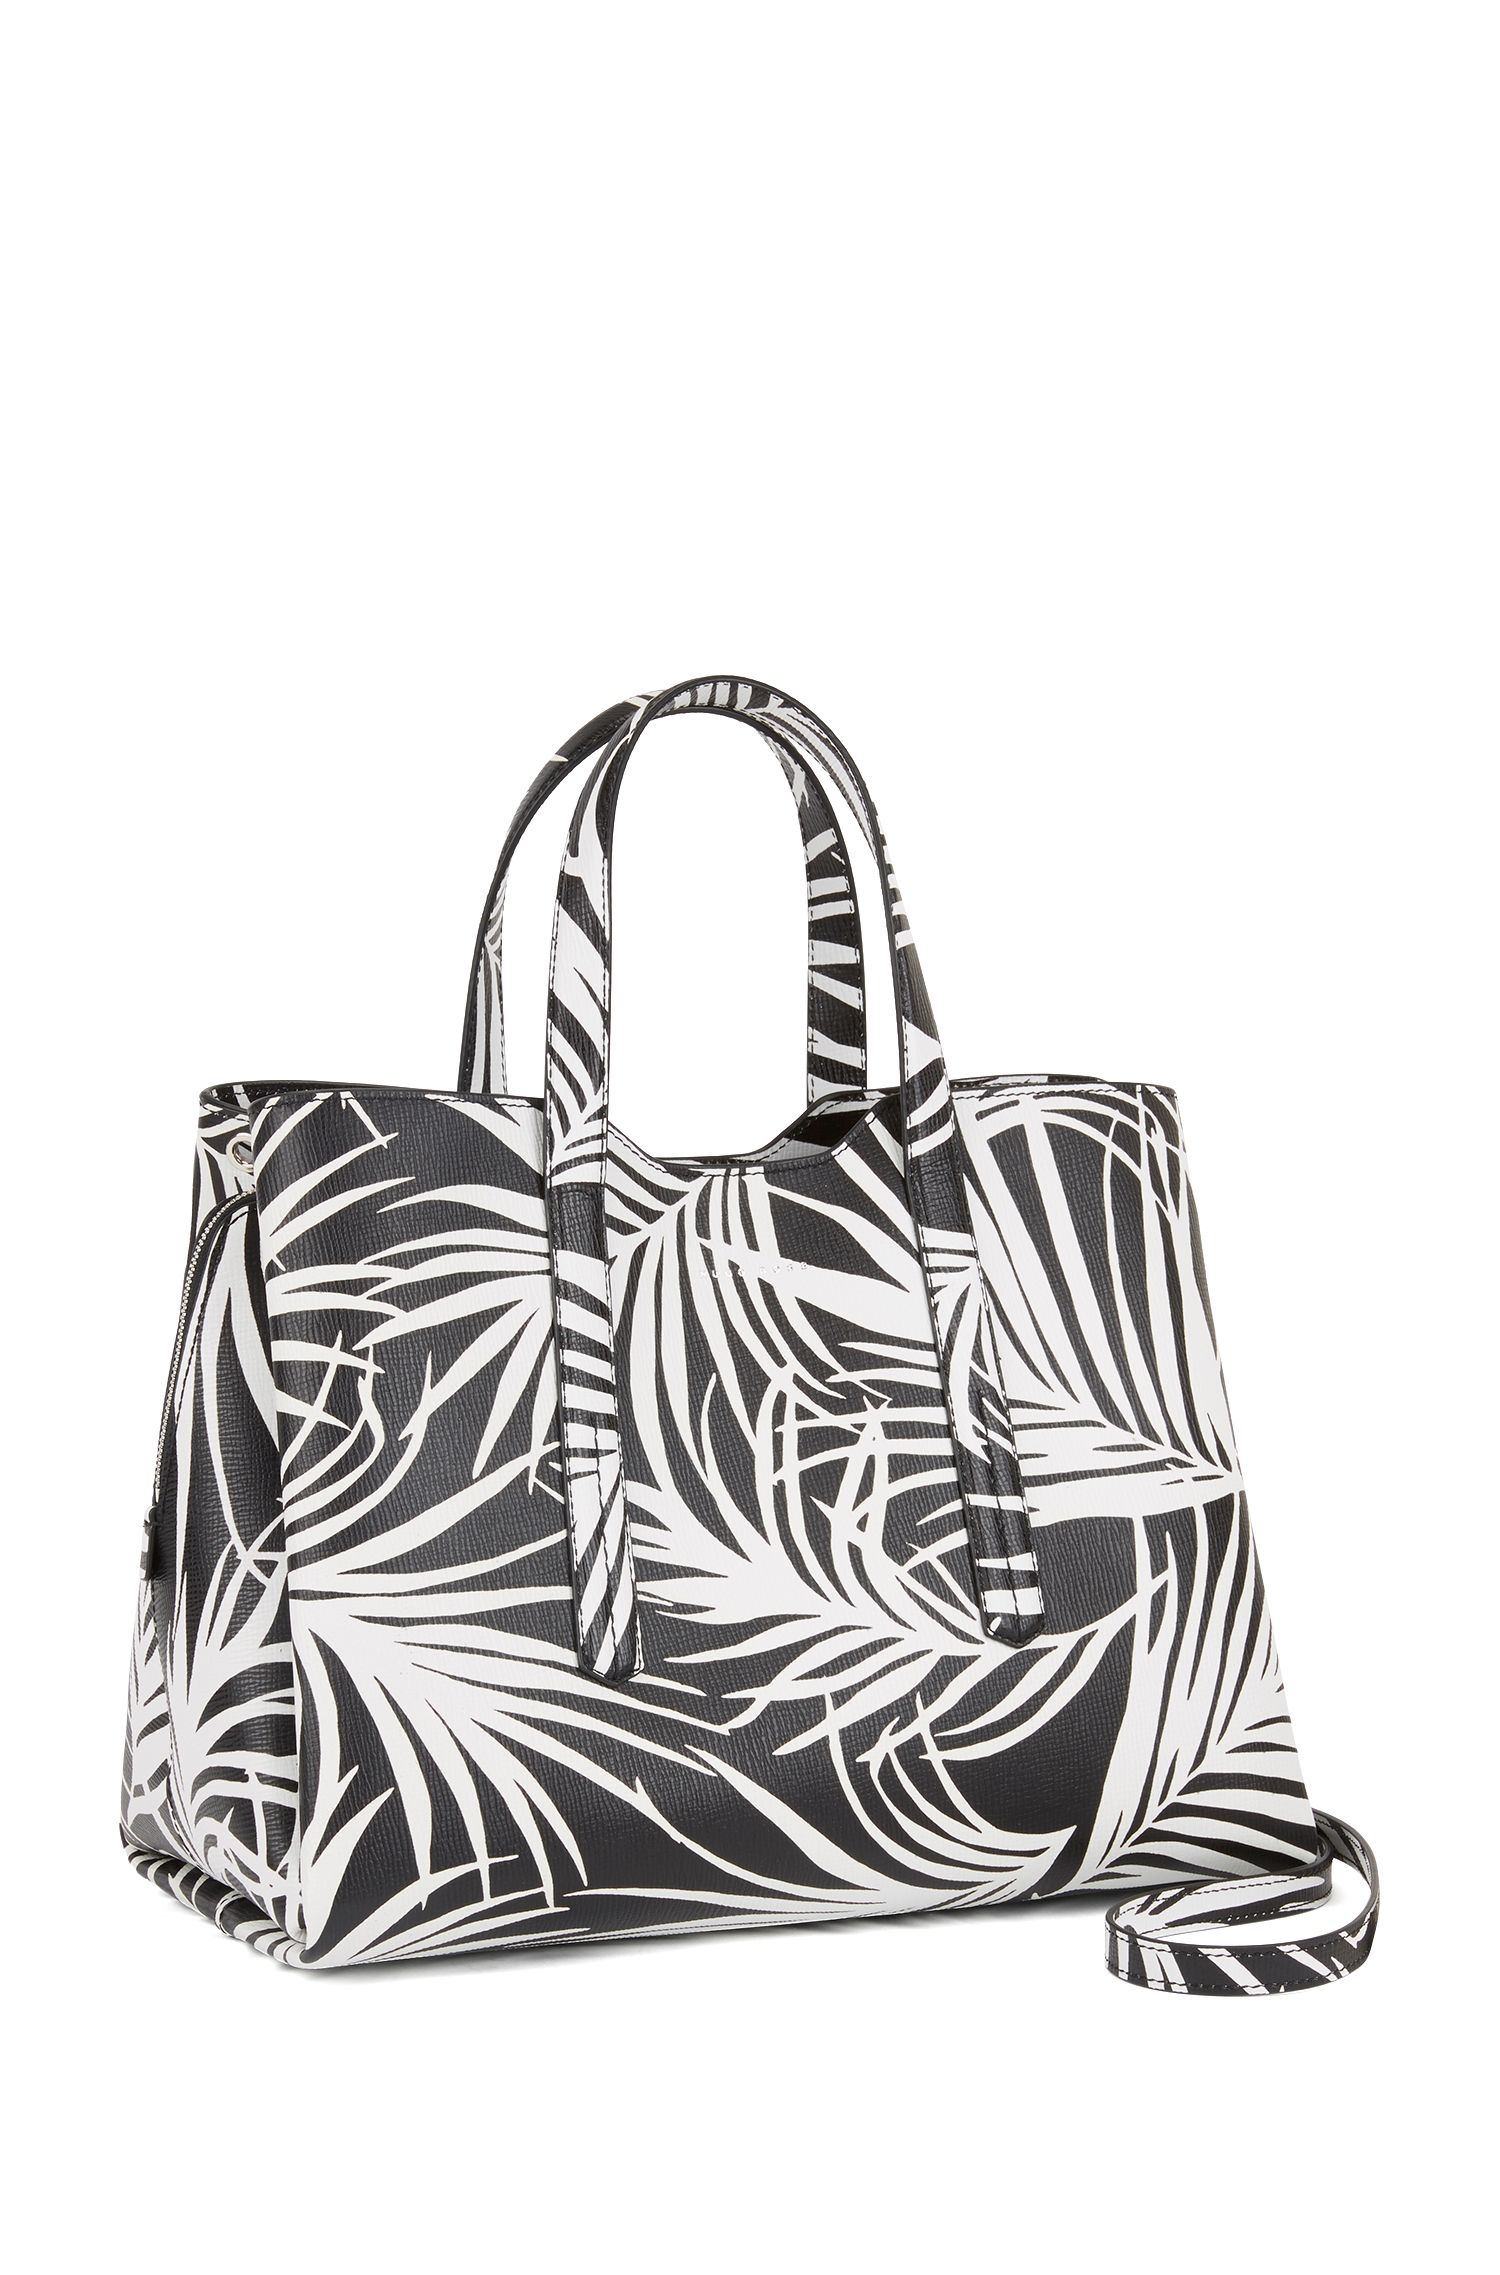 Tote bag in Italian calf leather with seasonal print